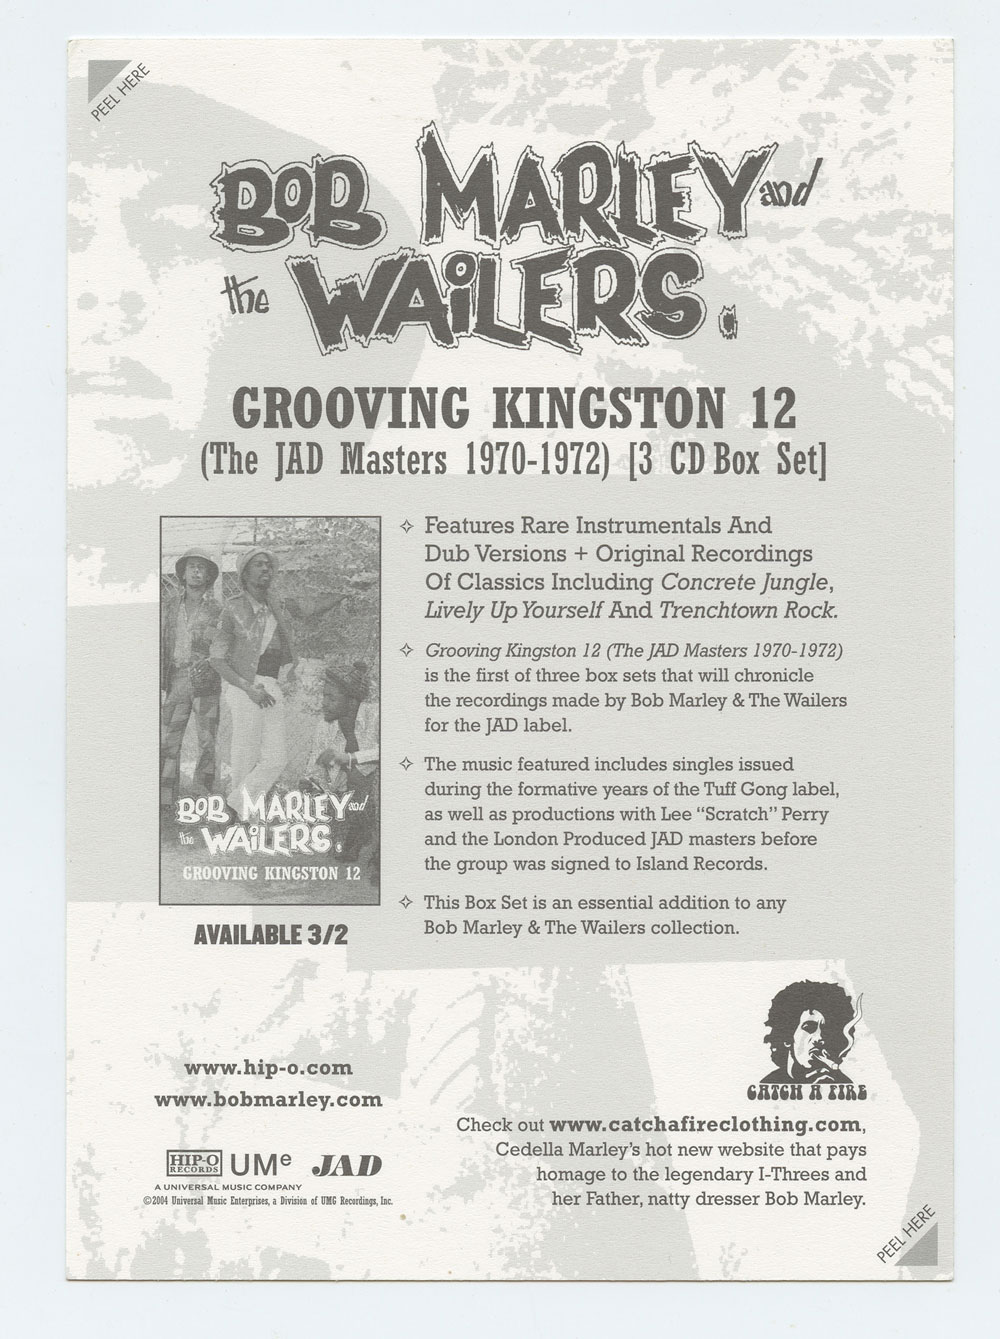 Bob Marley Sticker Grooving Kingston 12 Promo 2004